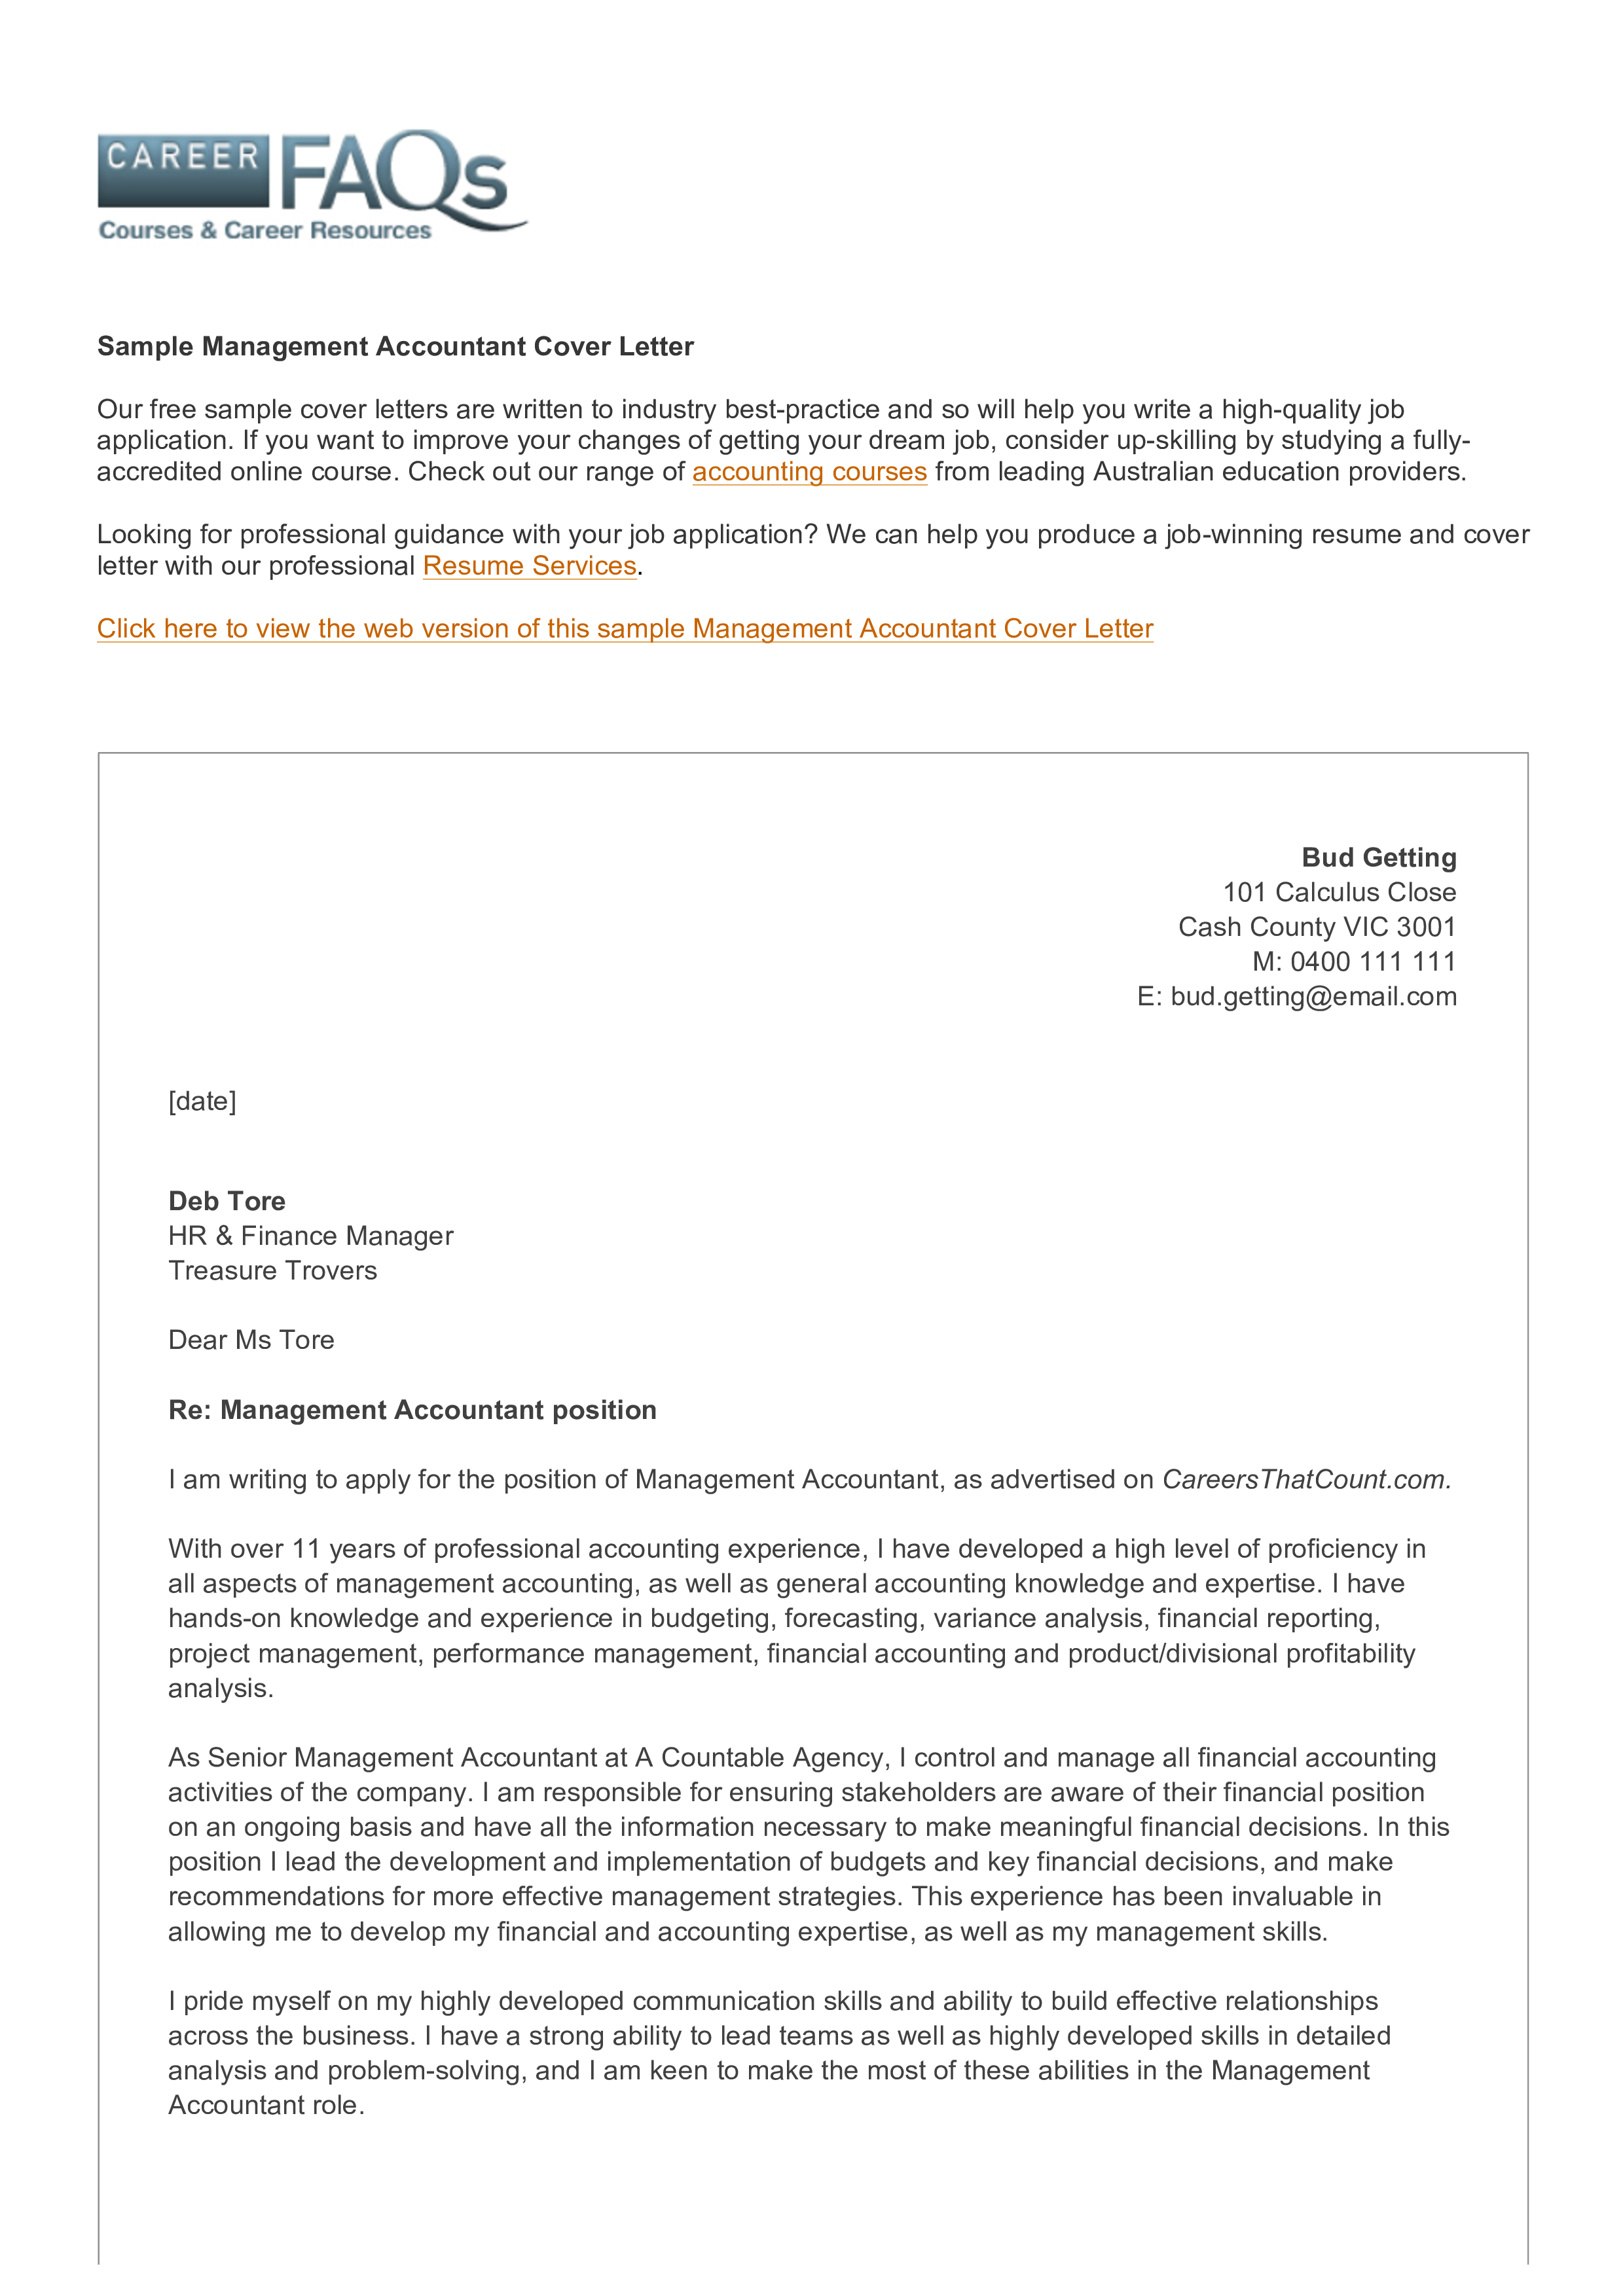 Free Management Accounting Position Cover Letter | Templates at ...